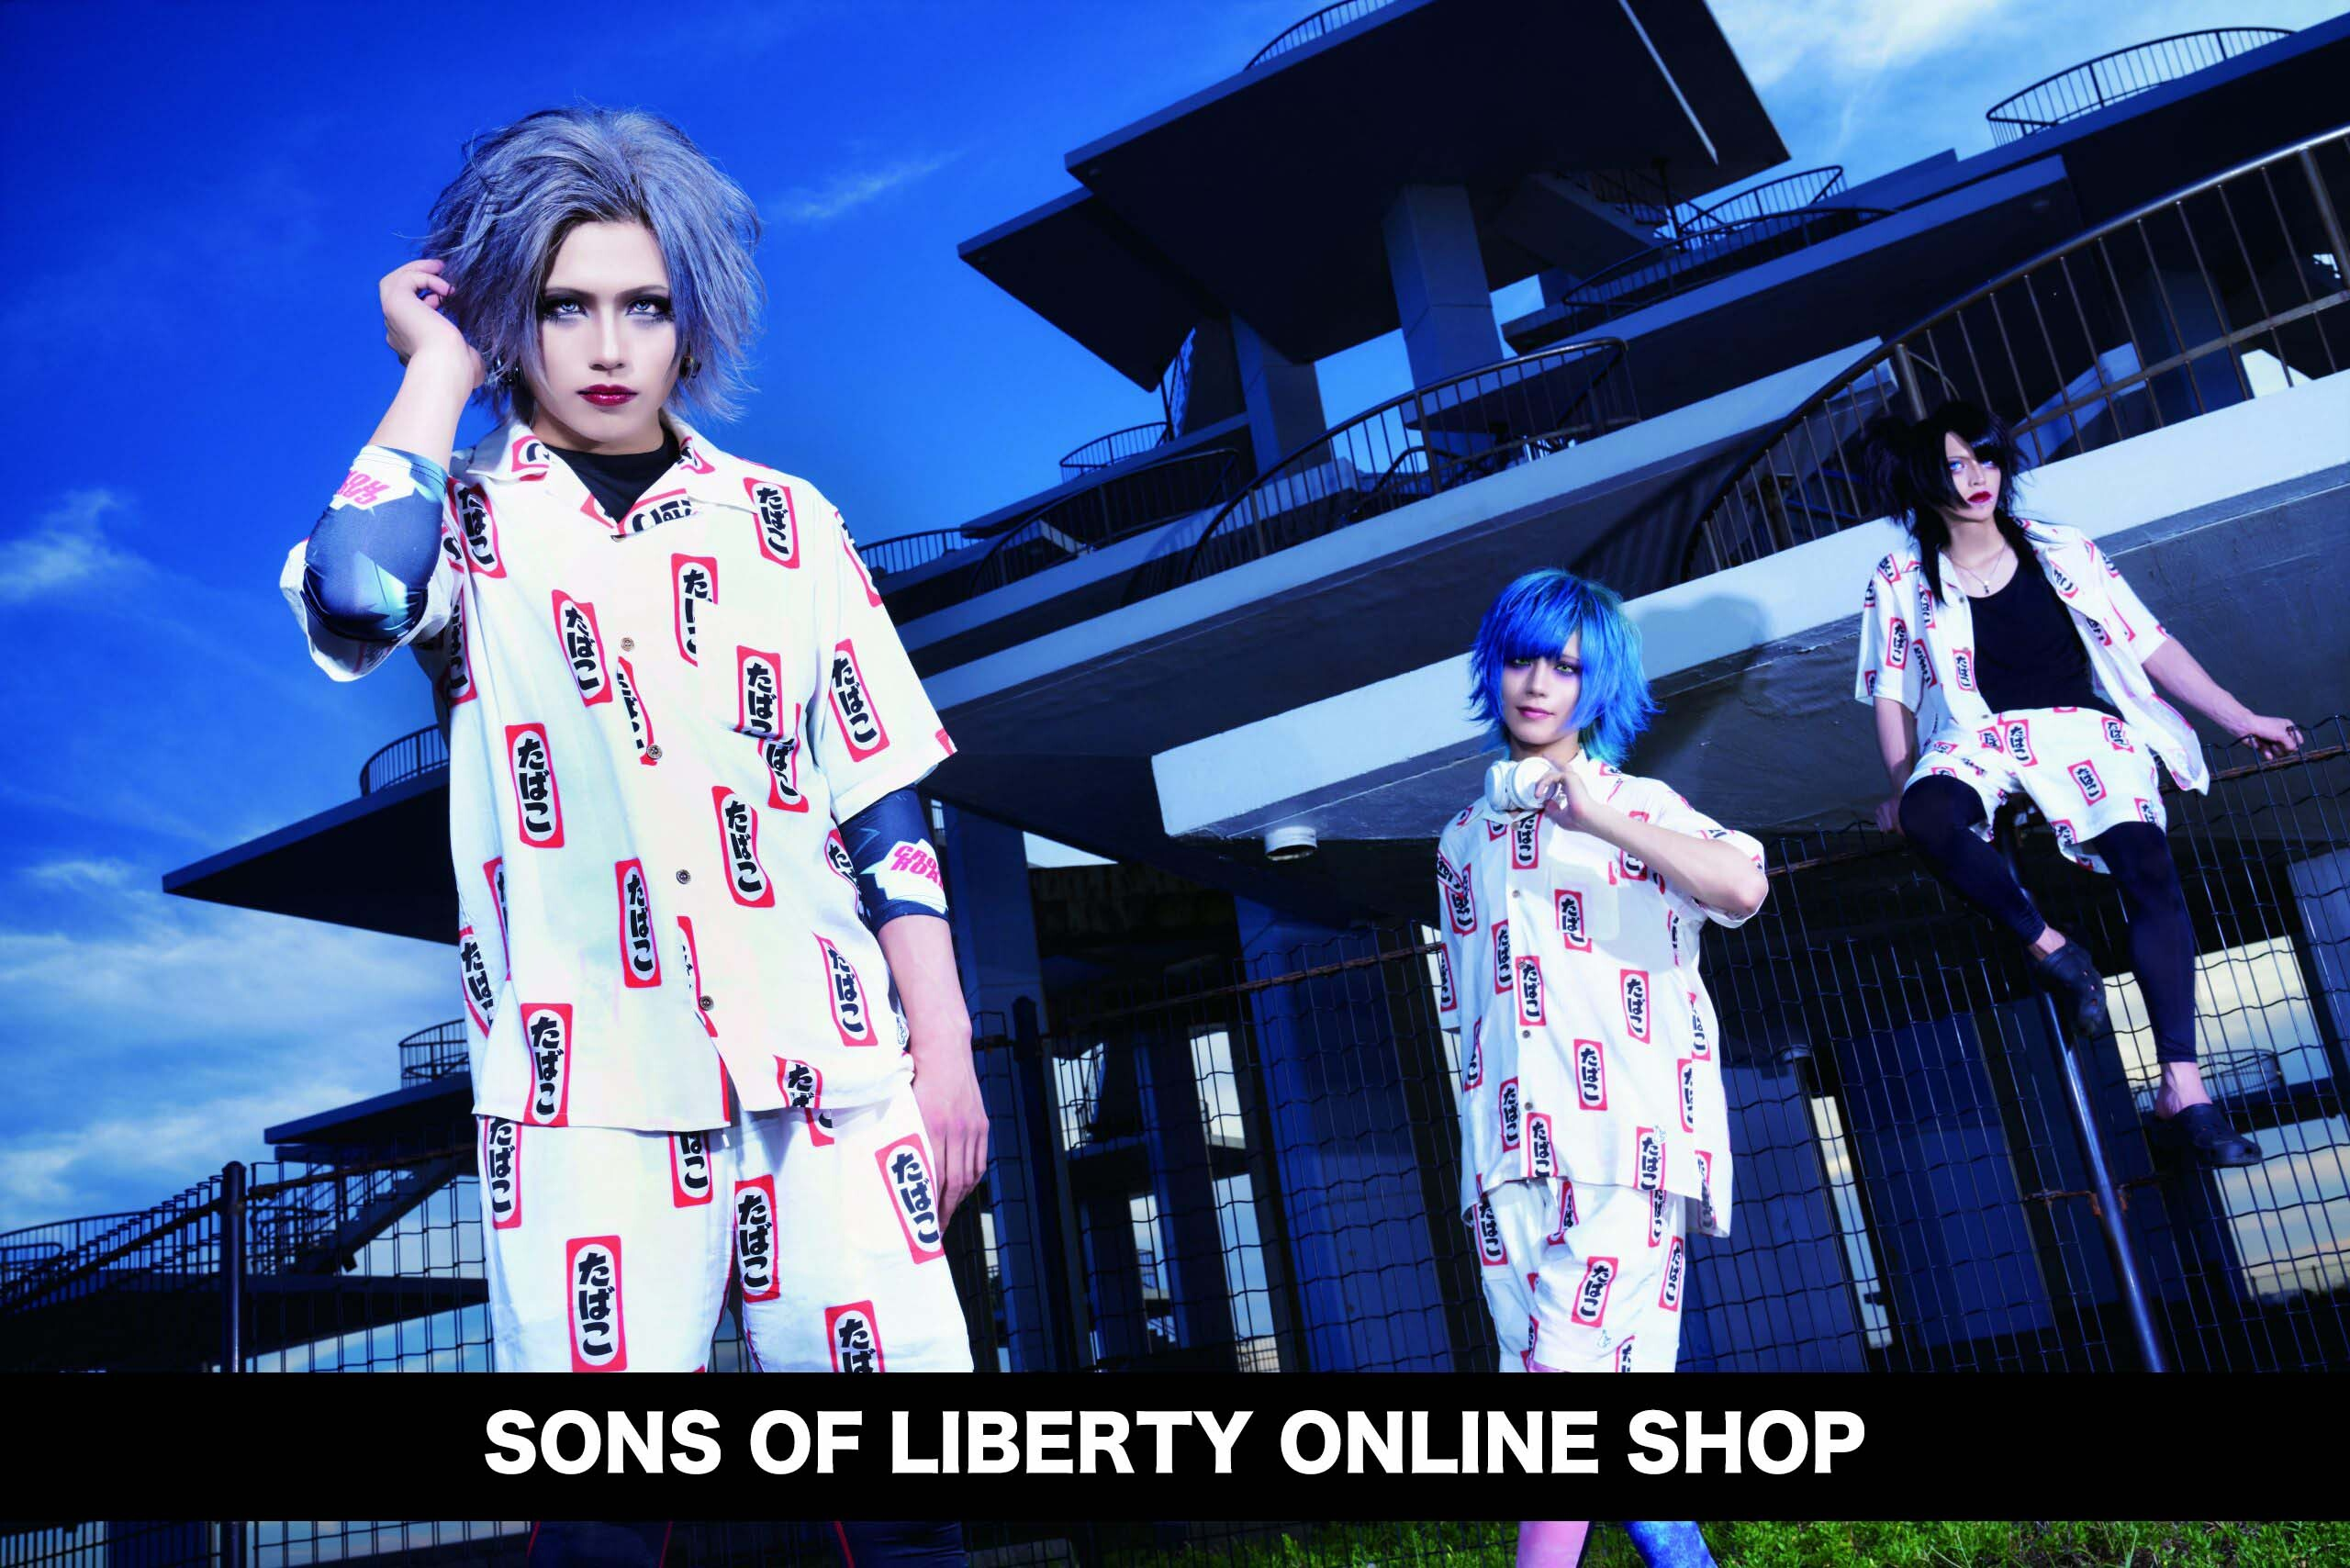 SONS OF LIBERTY ONLINE SHOP